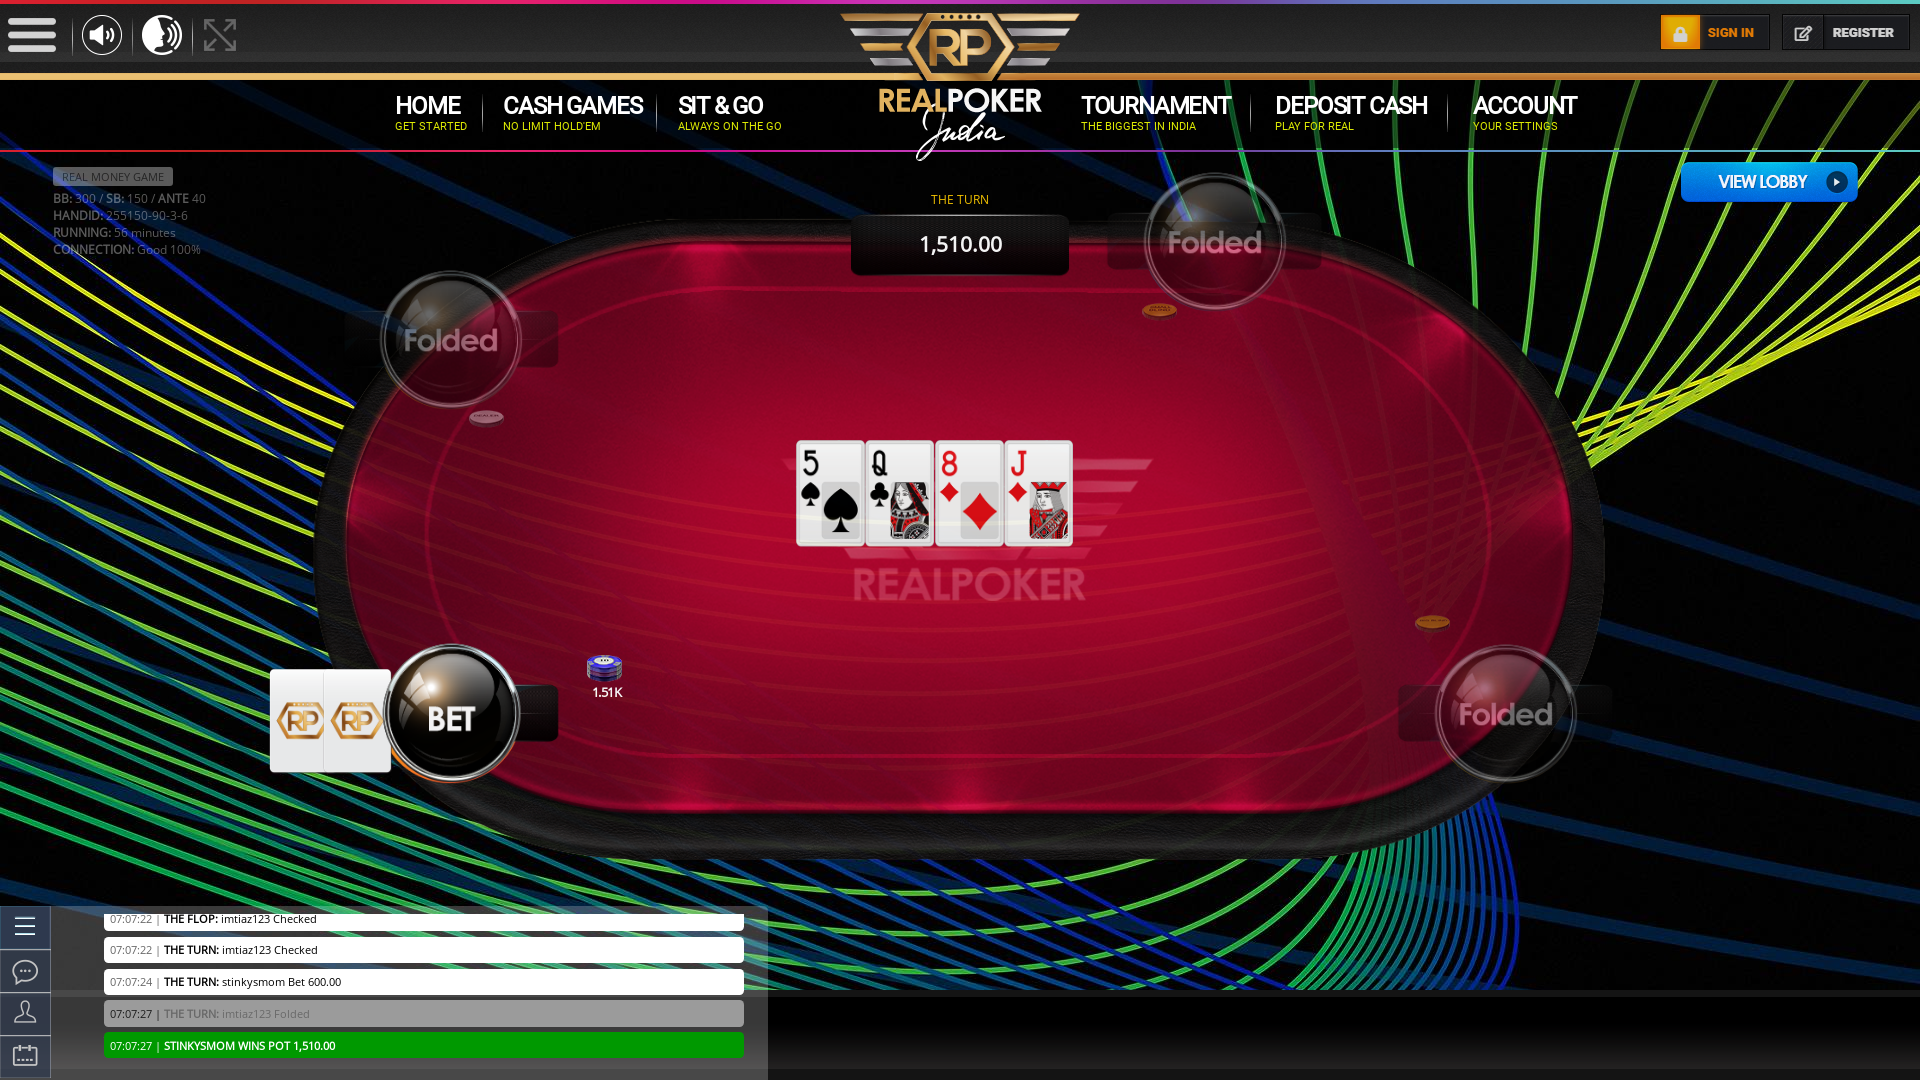 Real poker 10 player table in the 56th minute of the match